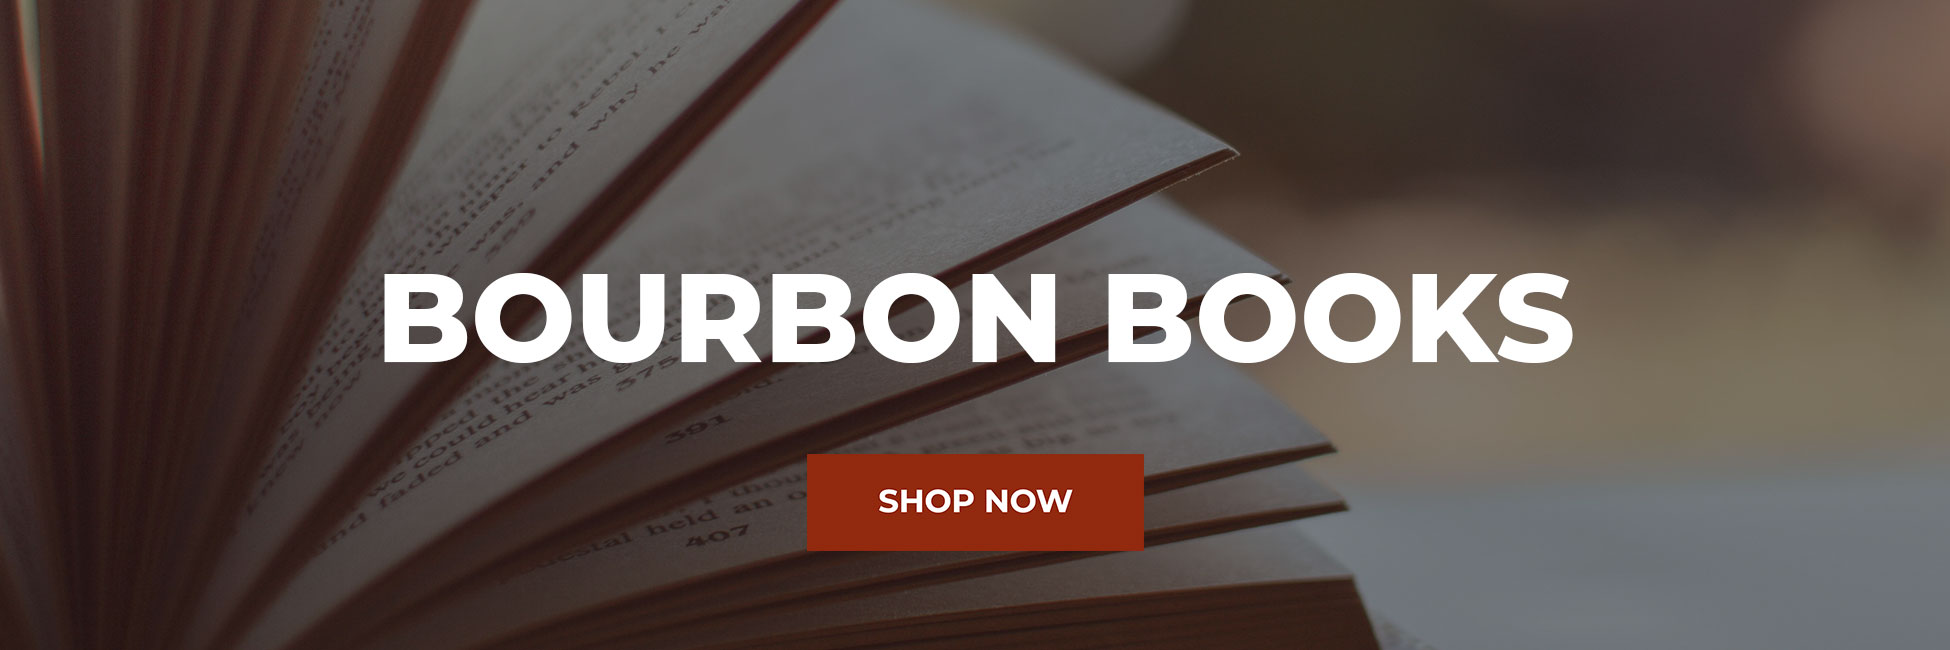 Bourbon Books